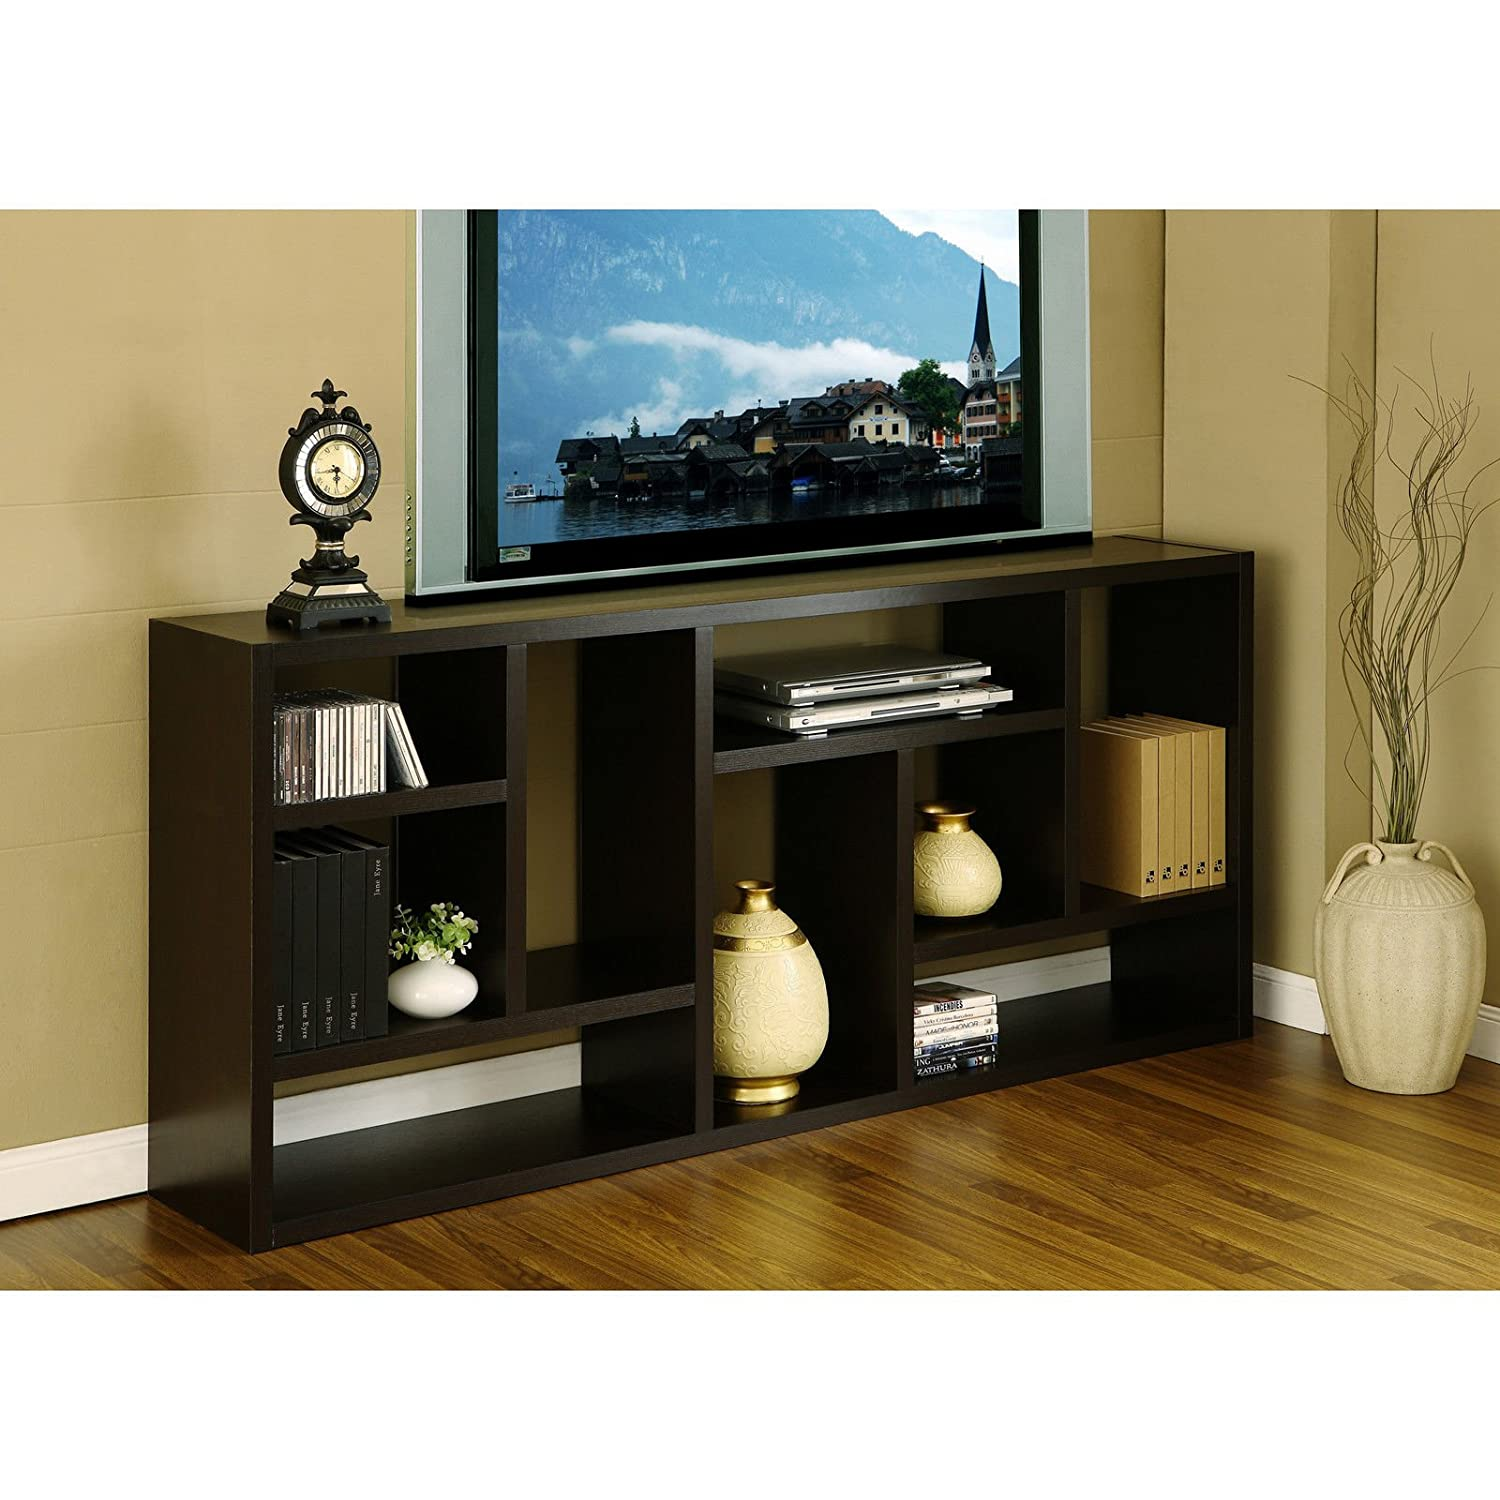 inch stand with tv today bookcase cherry garden product westwood home shipping free overstock bookcases corner